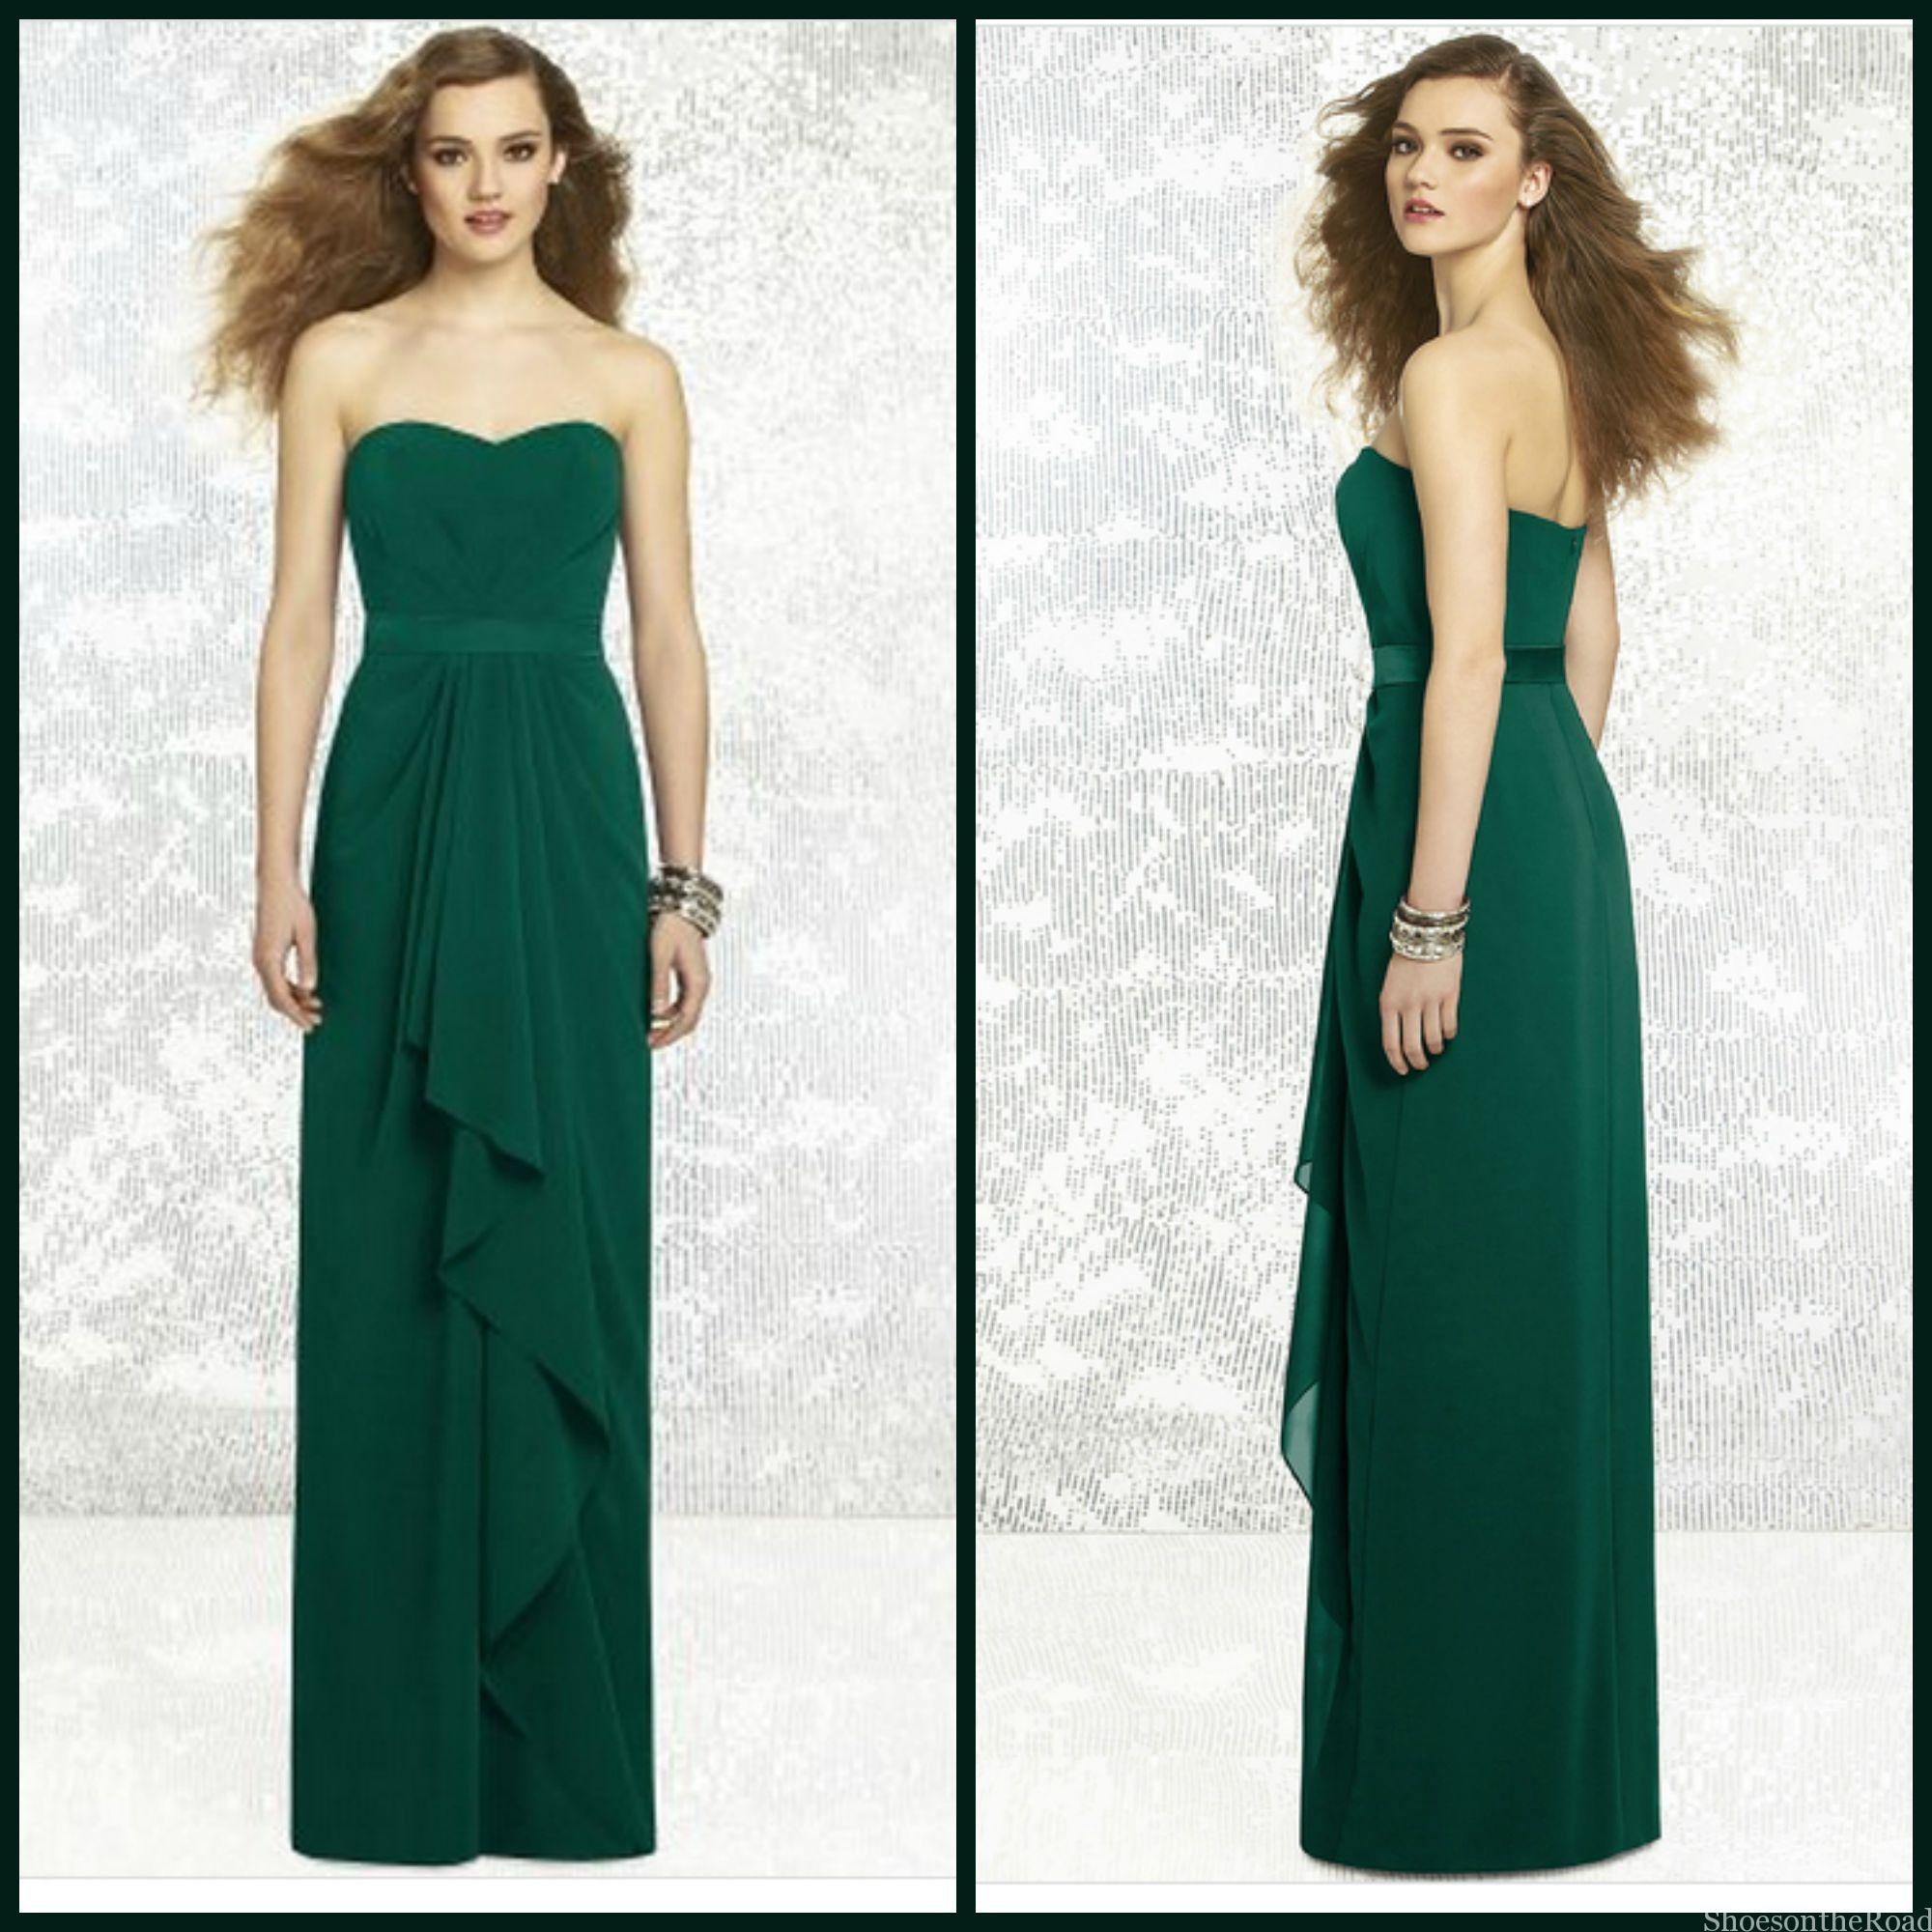 damigella d'onore guida Sleeveless Sweetheart Chiffon A-line Bridesmaid Dresses_shoesontheroad